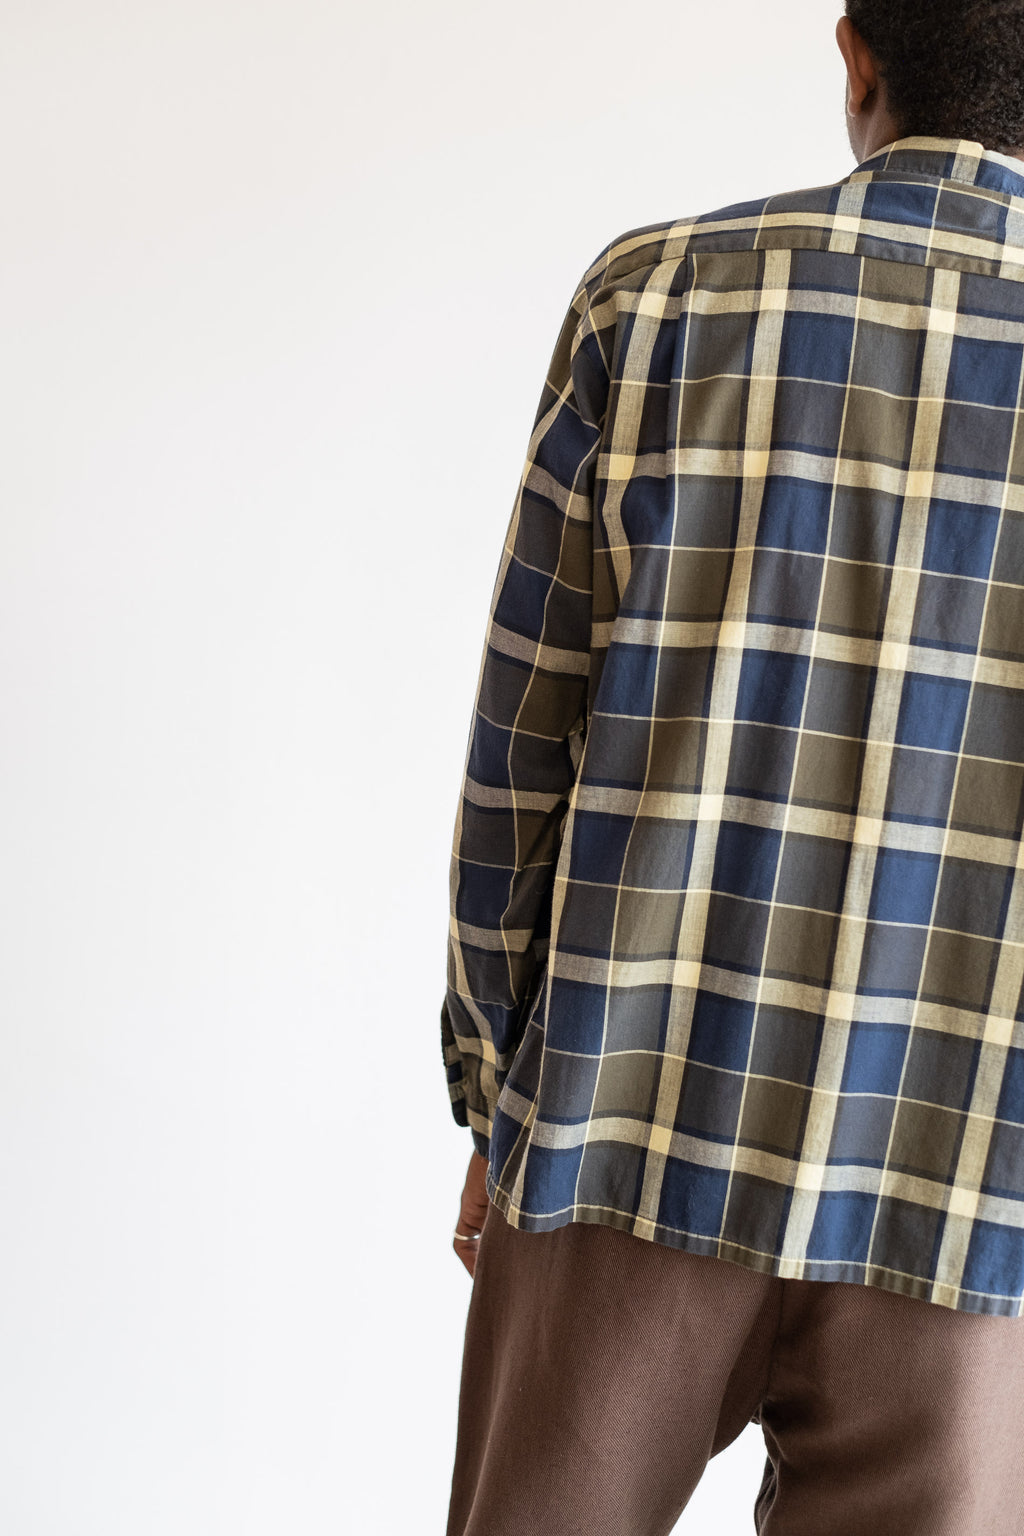 1950's LONG SLEEVE PLAID SHIRT